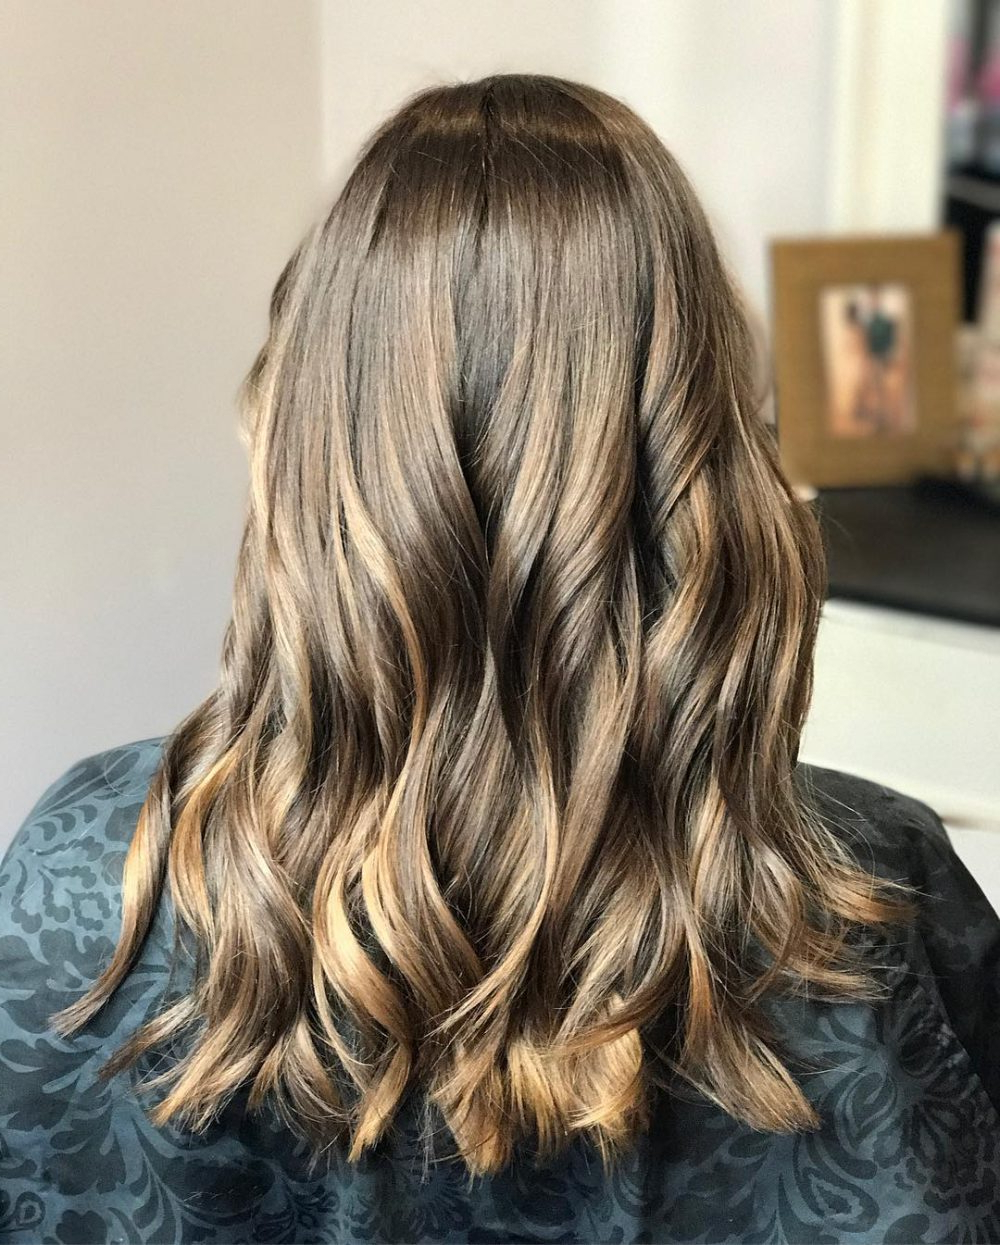 Newest Medium Brown Tones Hairstyles With Subtle Highlights Intended For 34 Sweetest Caramel Highlights On Light To Dark Brown Hair (2019) (View 4 of 20)